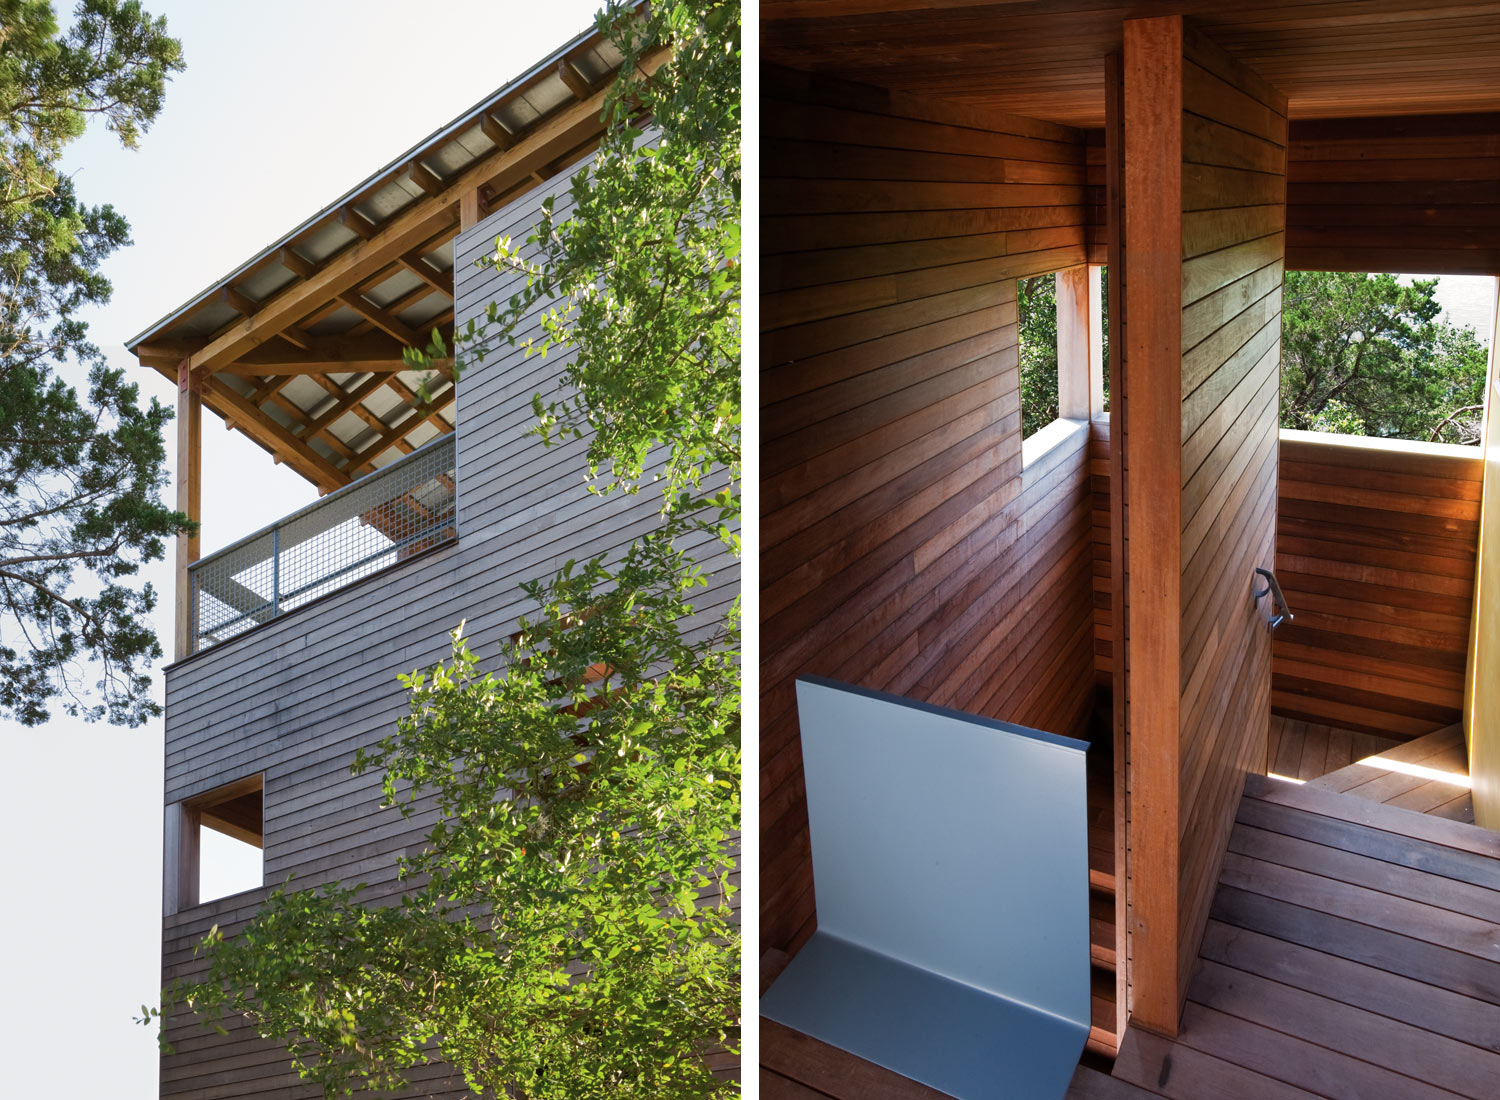 Austin Texas Tower House   Shelby White - The blog of ...